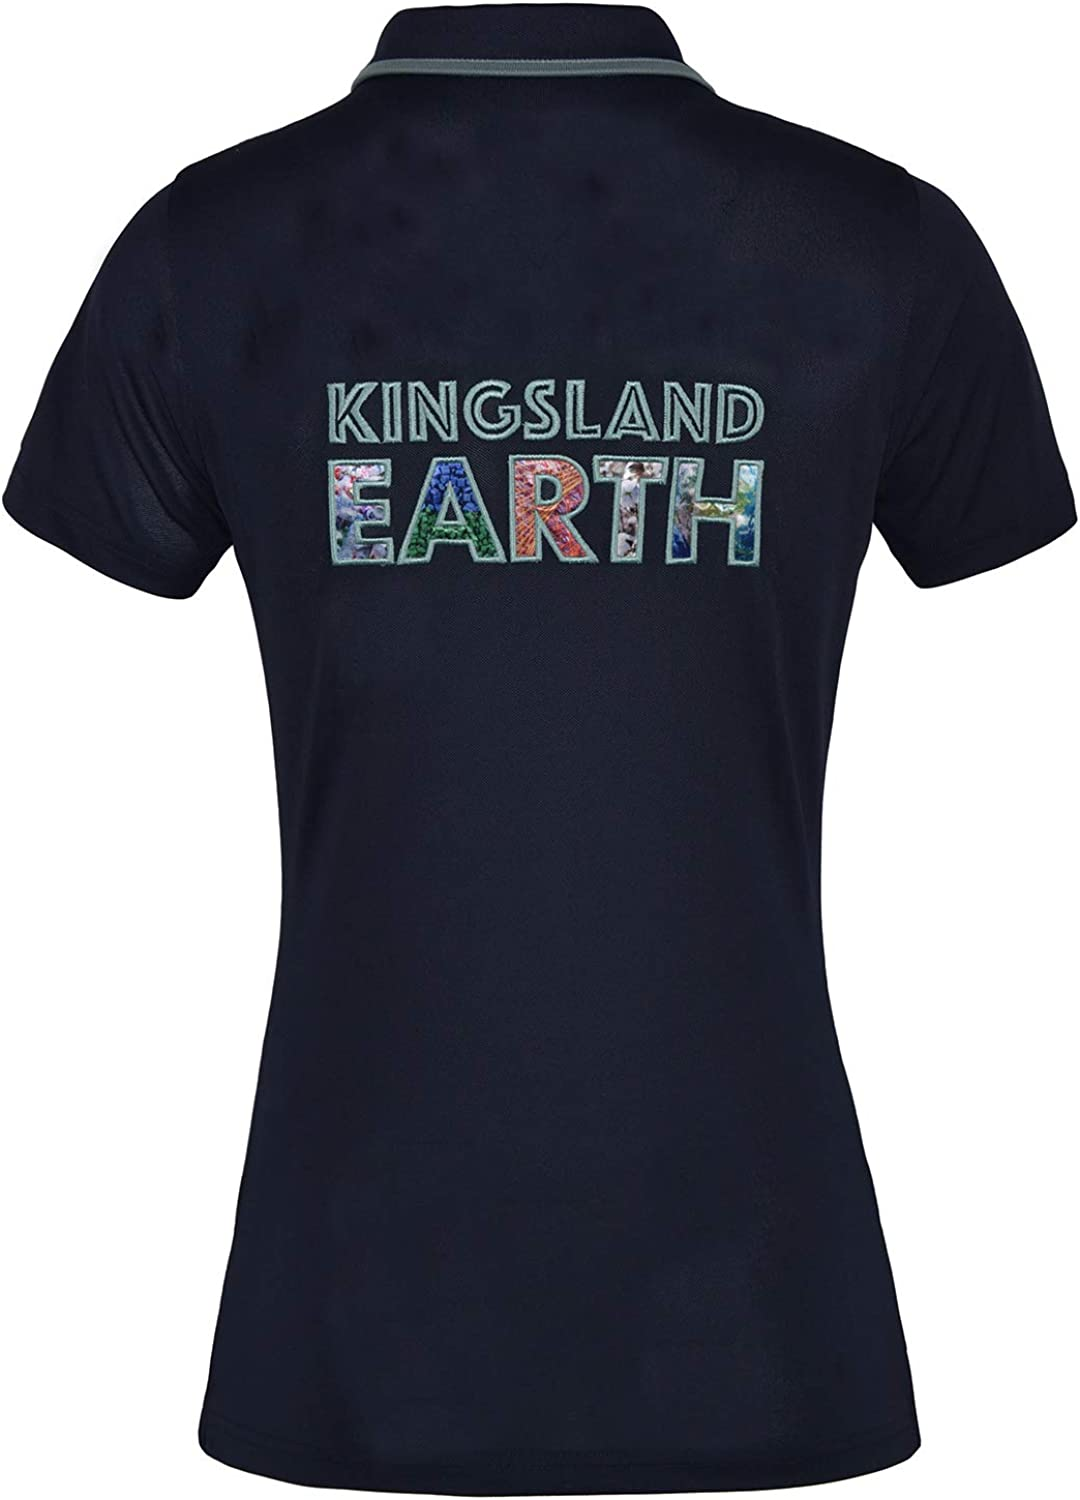 Kingsland Equestrian Earth Star Recycled Pique Womens Top Navy